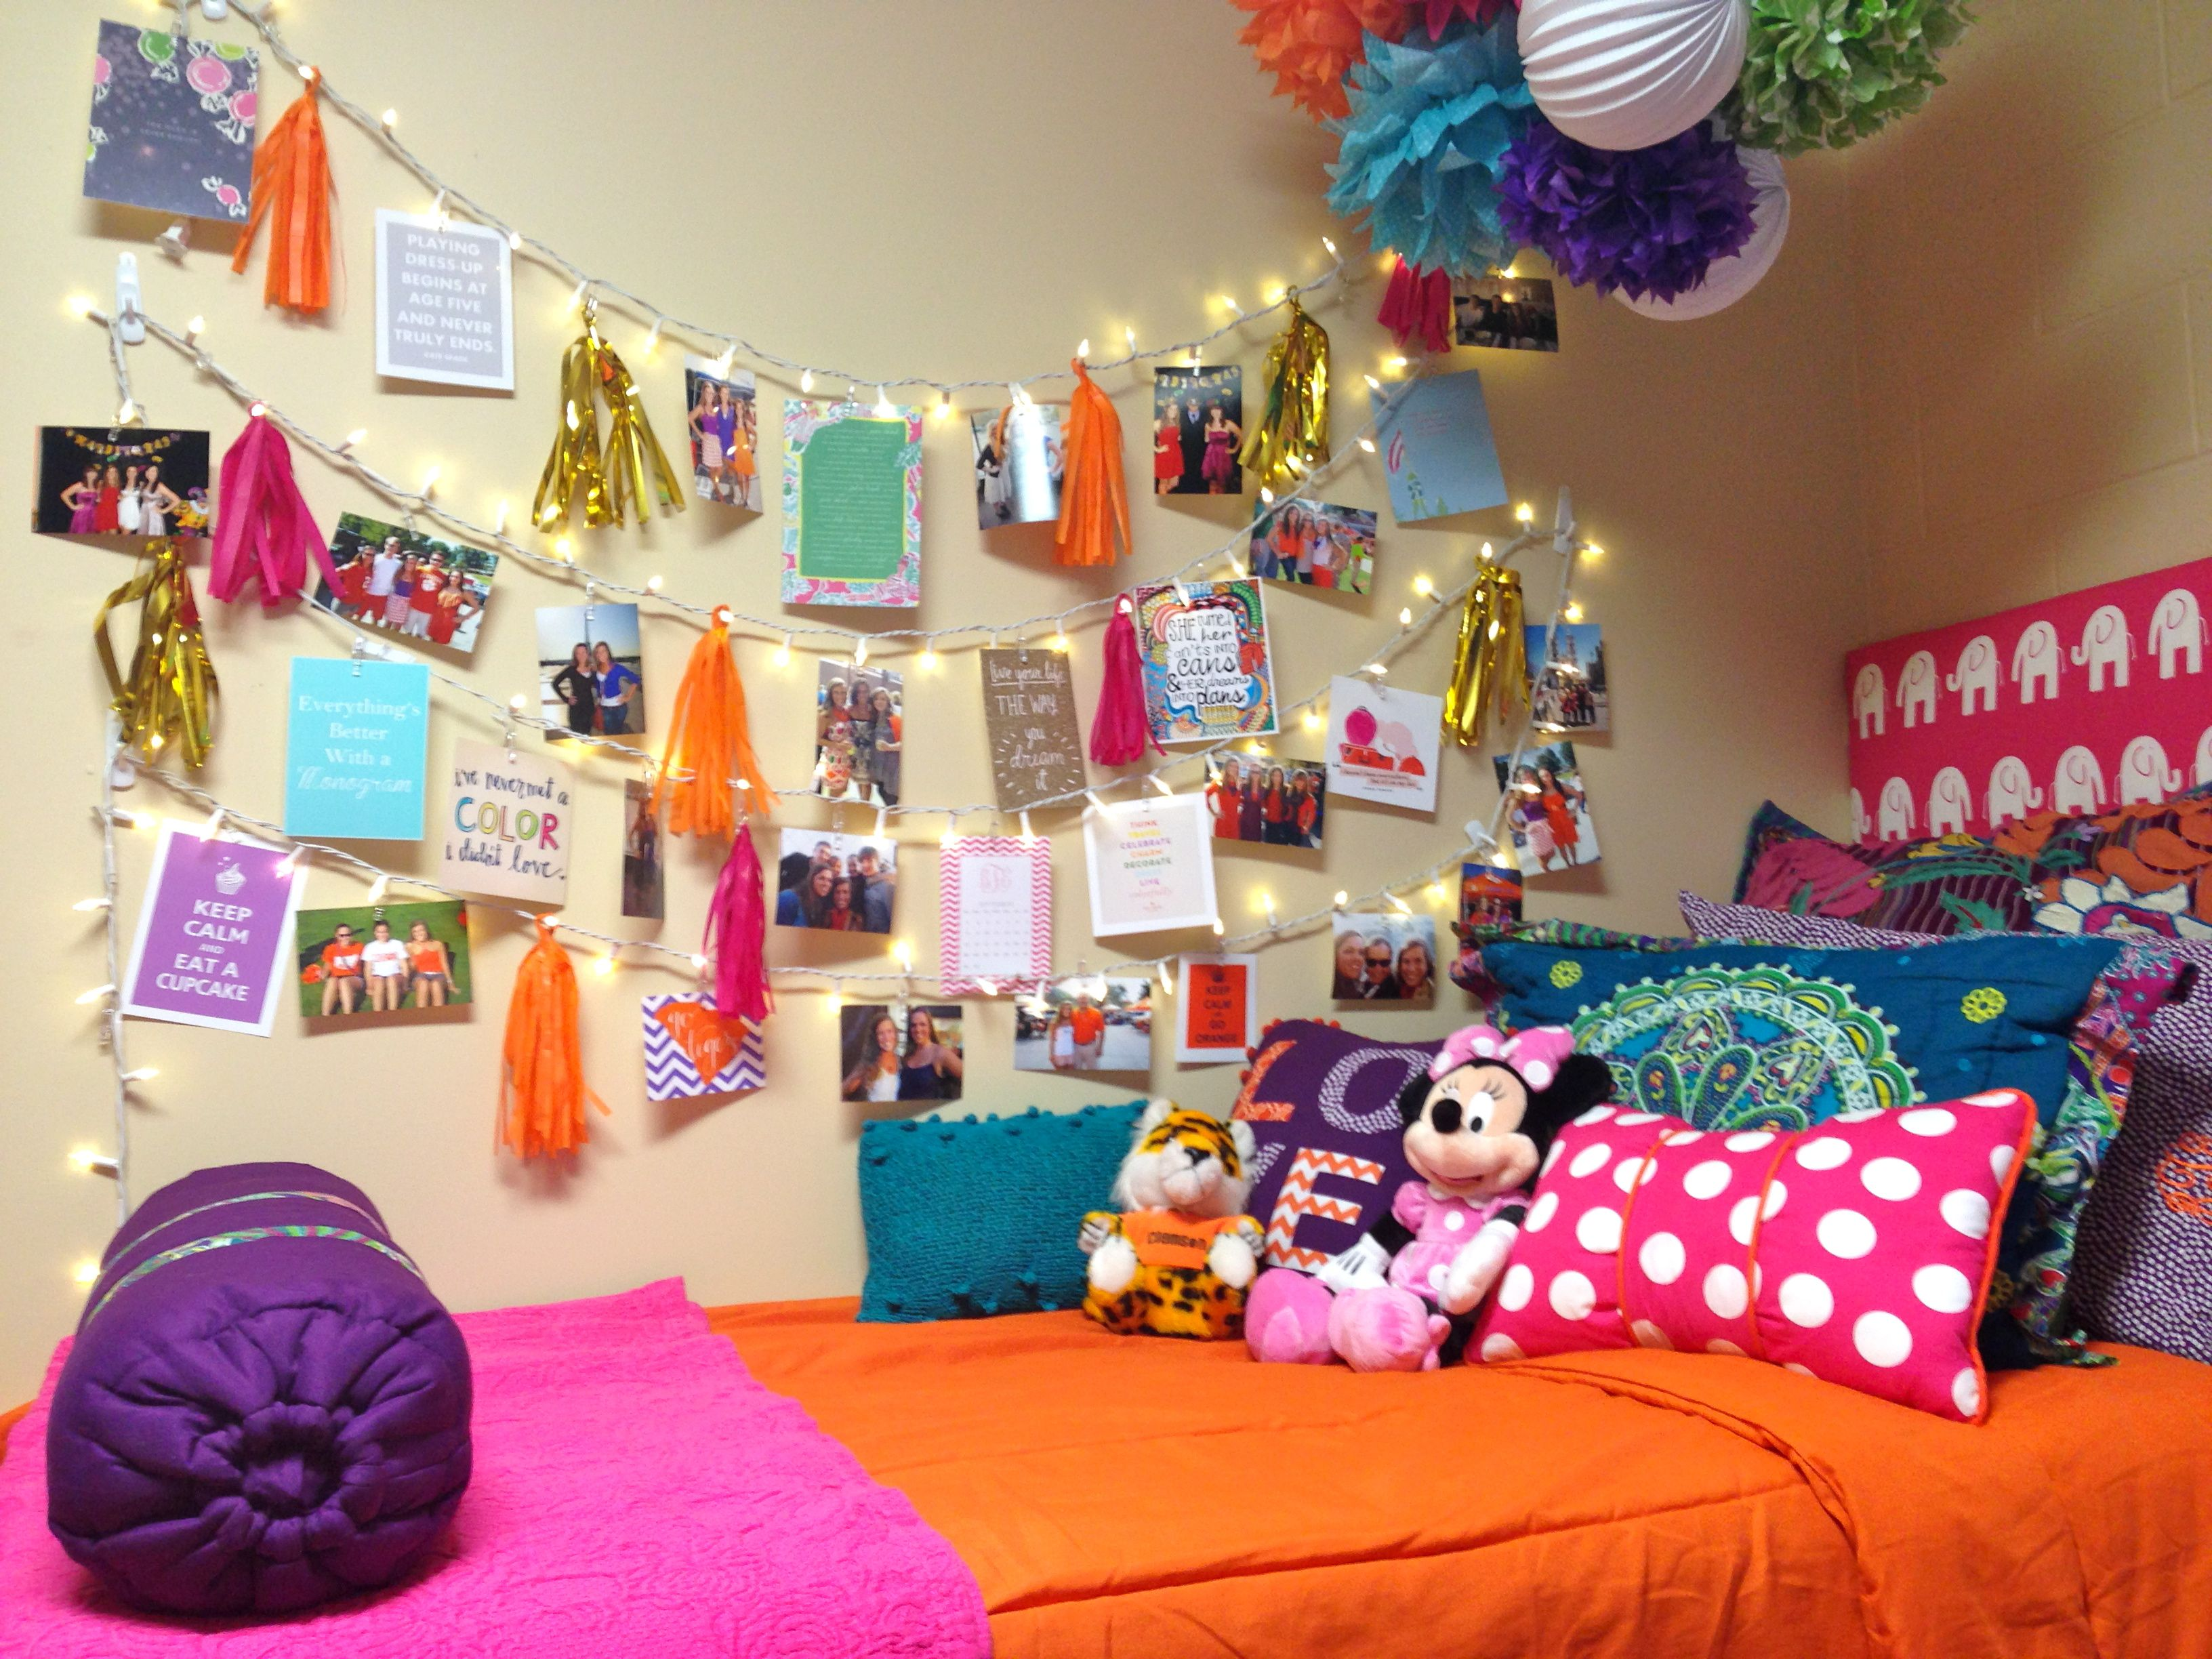 Decorative lights for dorm room - Dorm Room Bed Headboard And String Lights